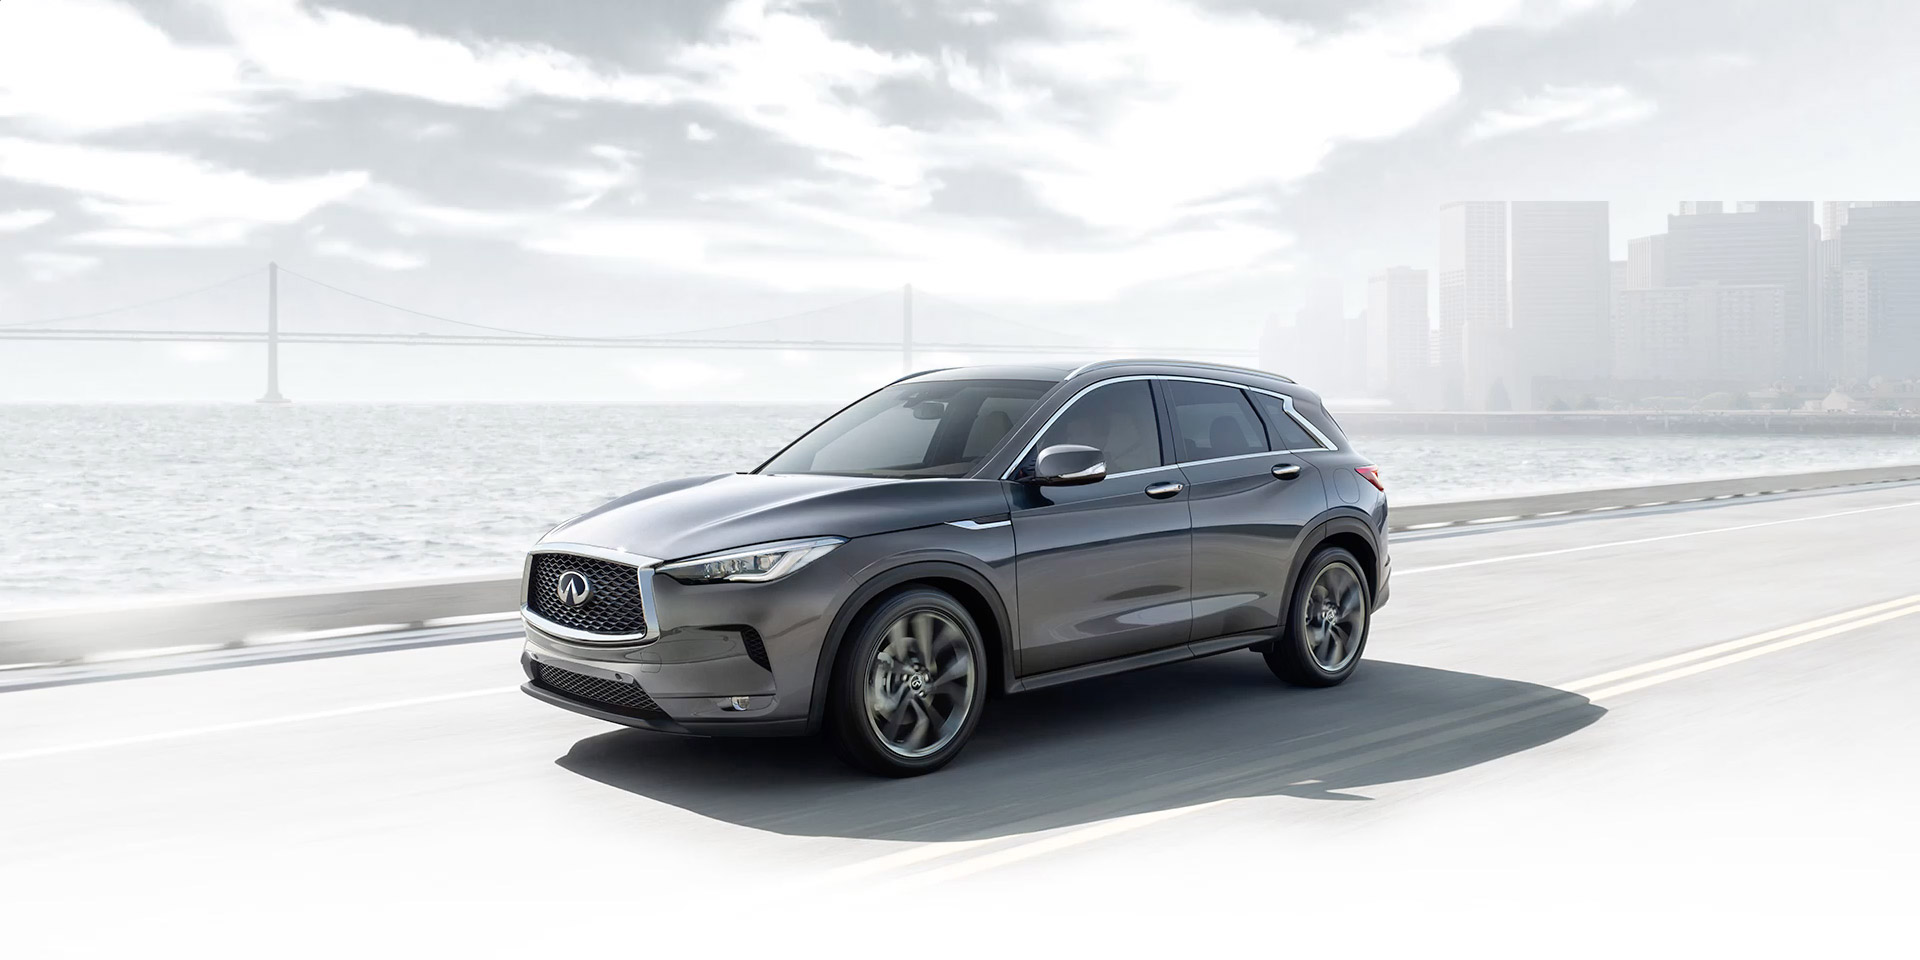 2019 INFINITI QX50 Luxury Crossover